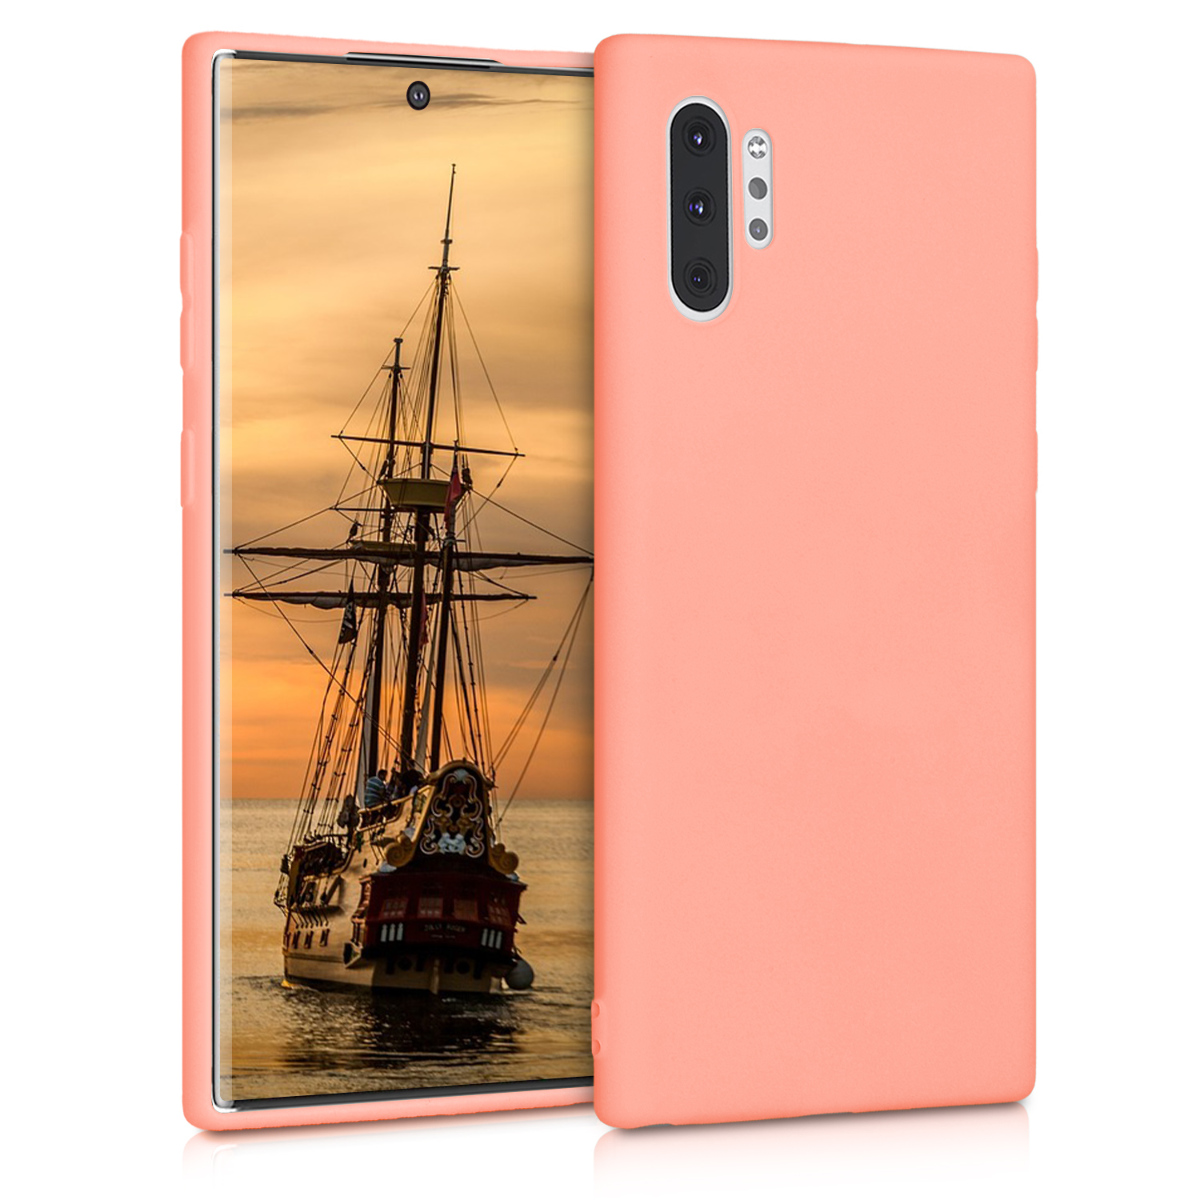 KW Θήκη Σιλικόνης Samsung Galaxy Note 10 Plus - Coral Matte (49353.56)